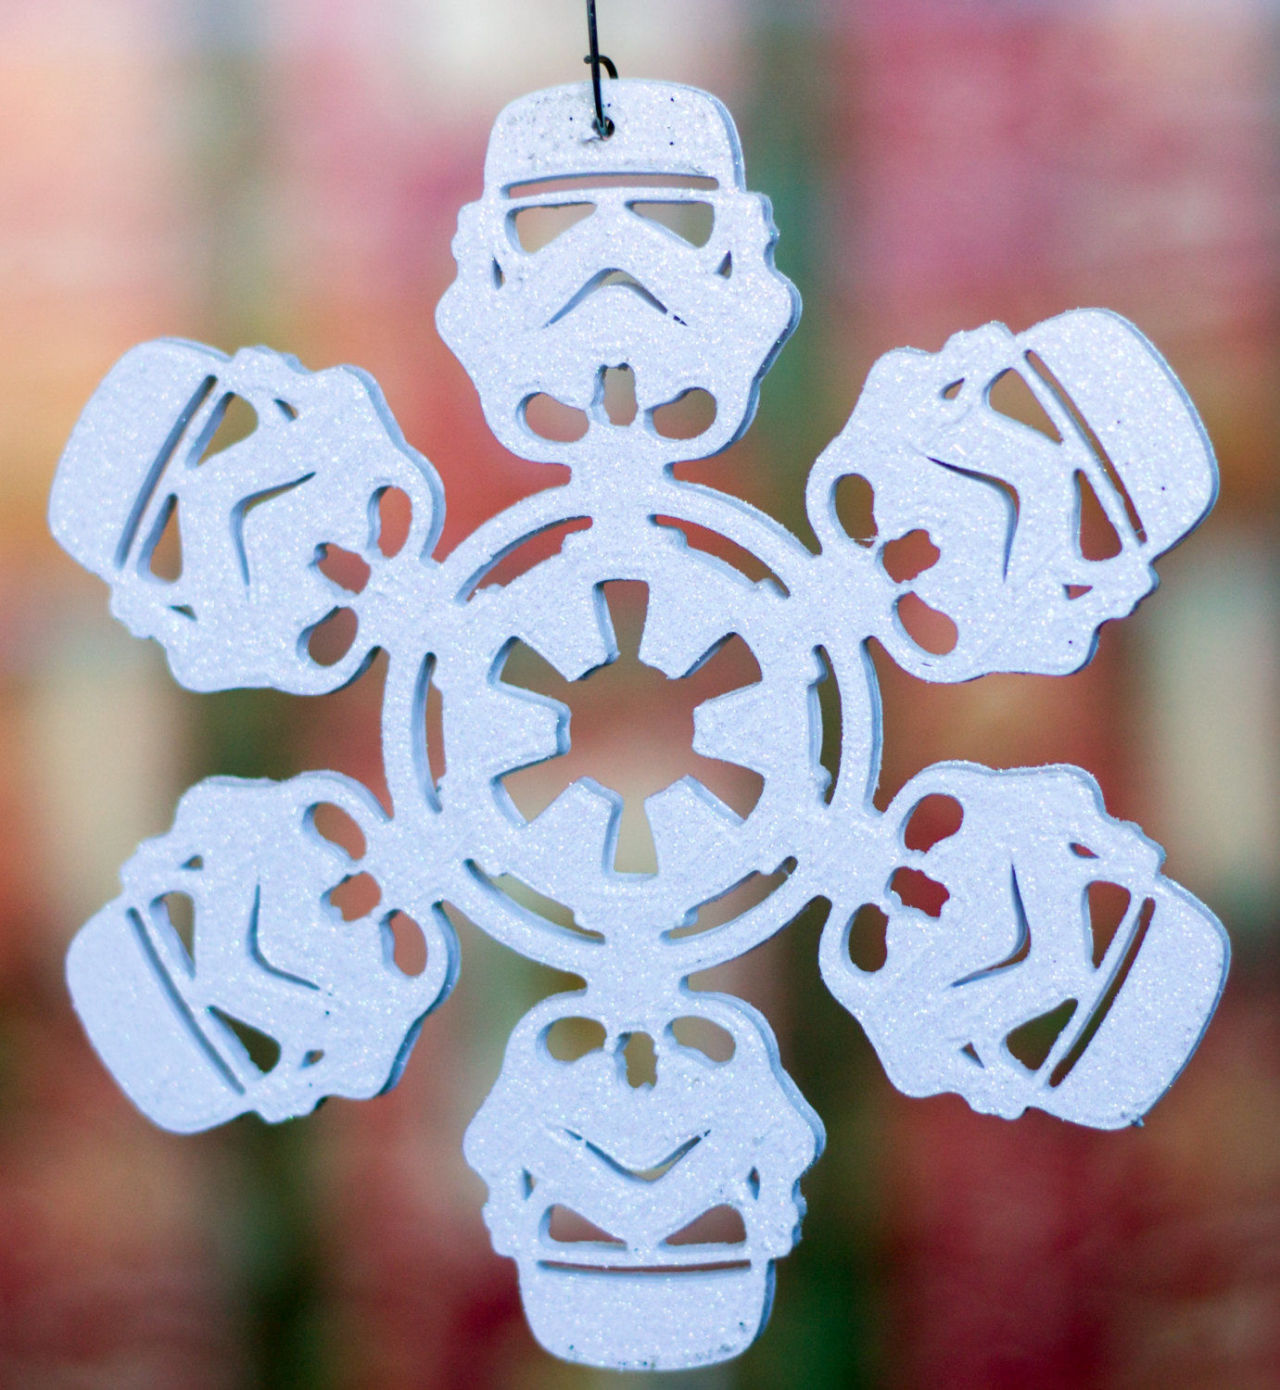 10 Christmas Decorations For A Very Geeky Holiday Season, From Stormtrooper  Snowflakes To Tardis Stockings